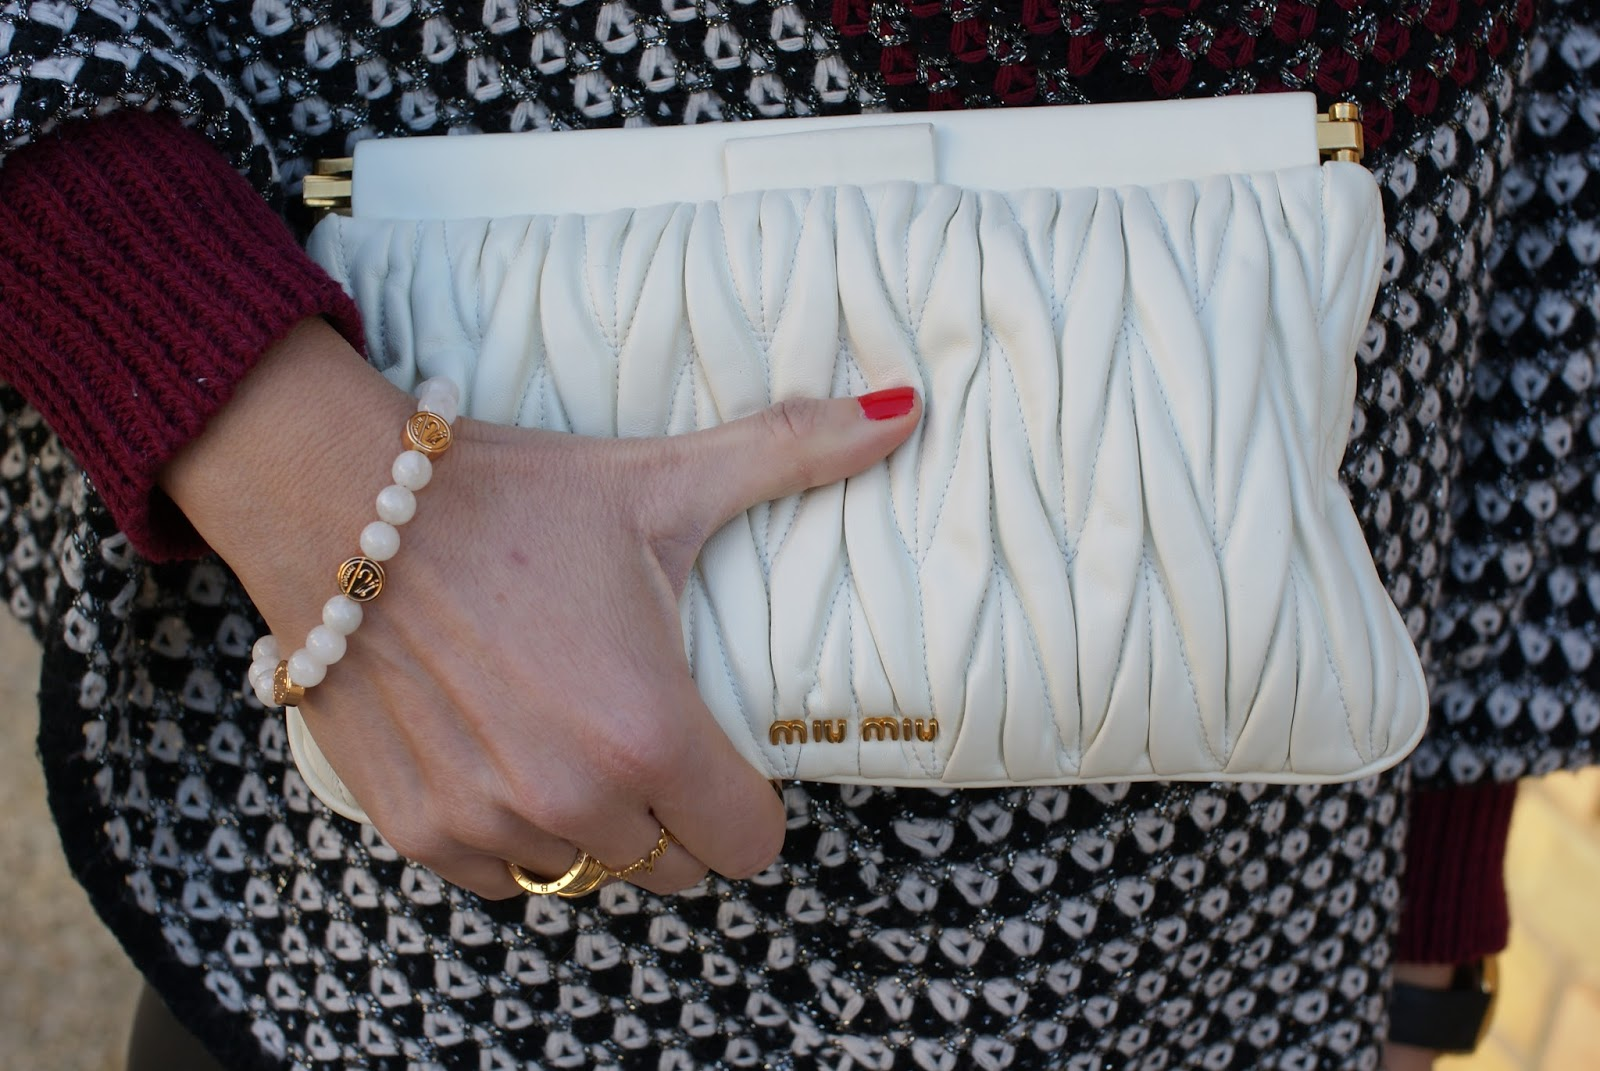 Millelire rosateresa bracciale re e clutch Miu Miu su Fashion and Cookies fashion blog